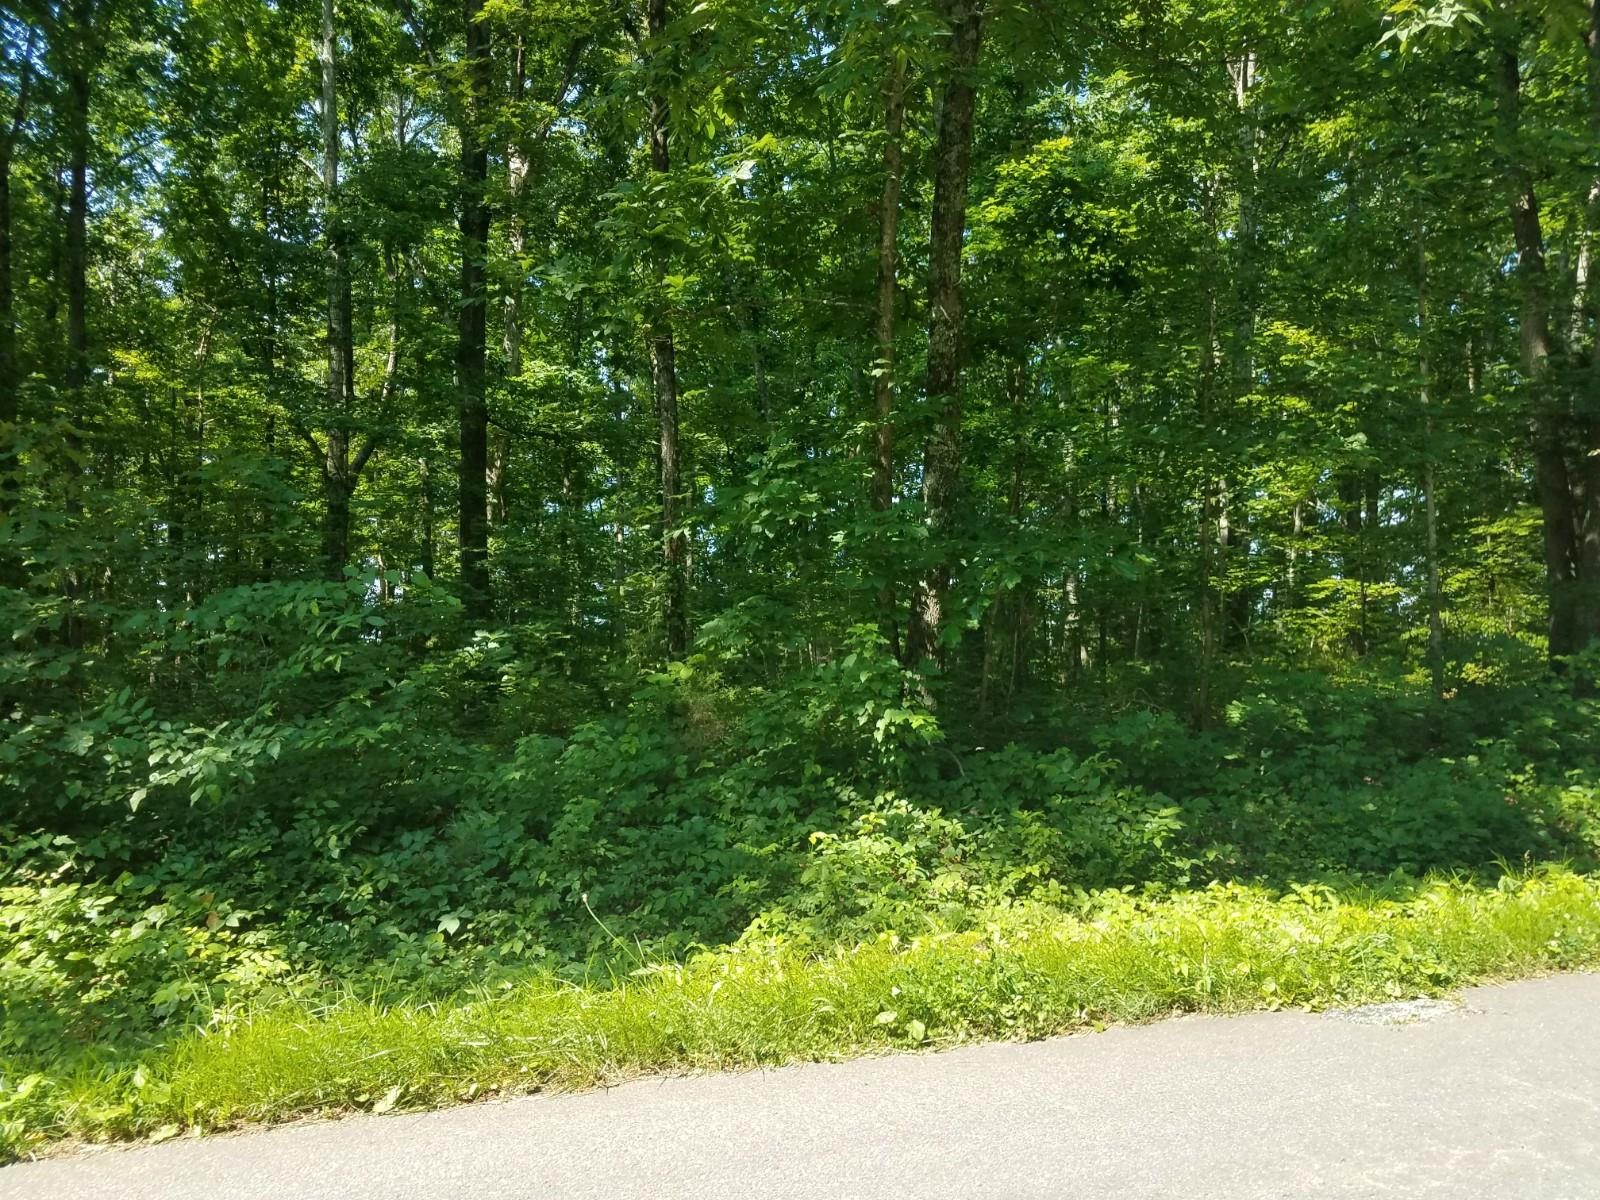 0 Pinewood Rd, Fairview, TN 37062 - Fairview, TN real estate listing